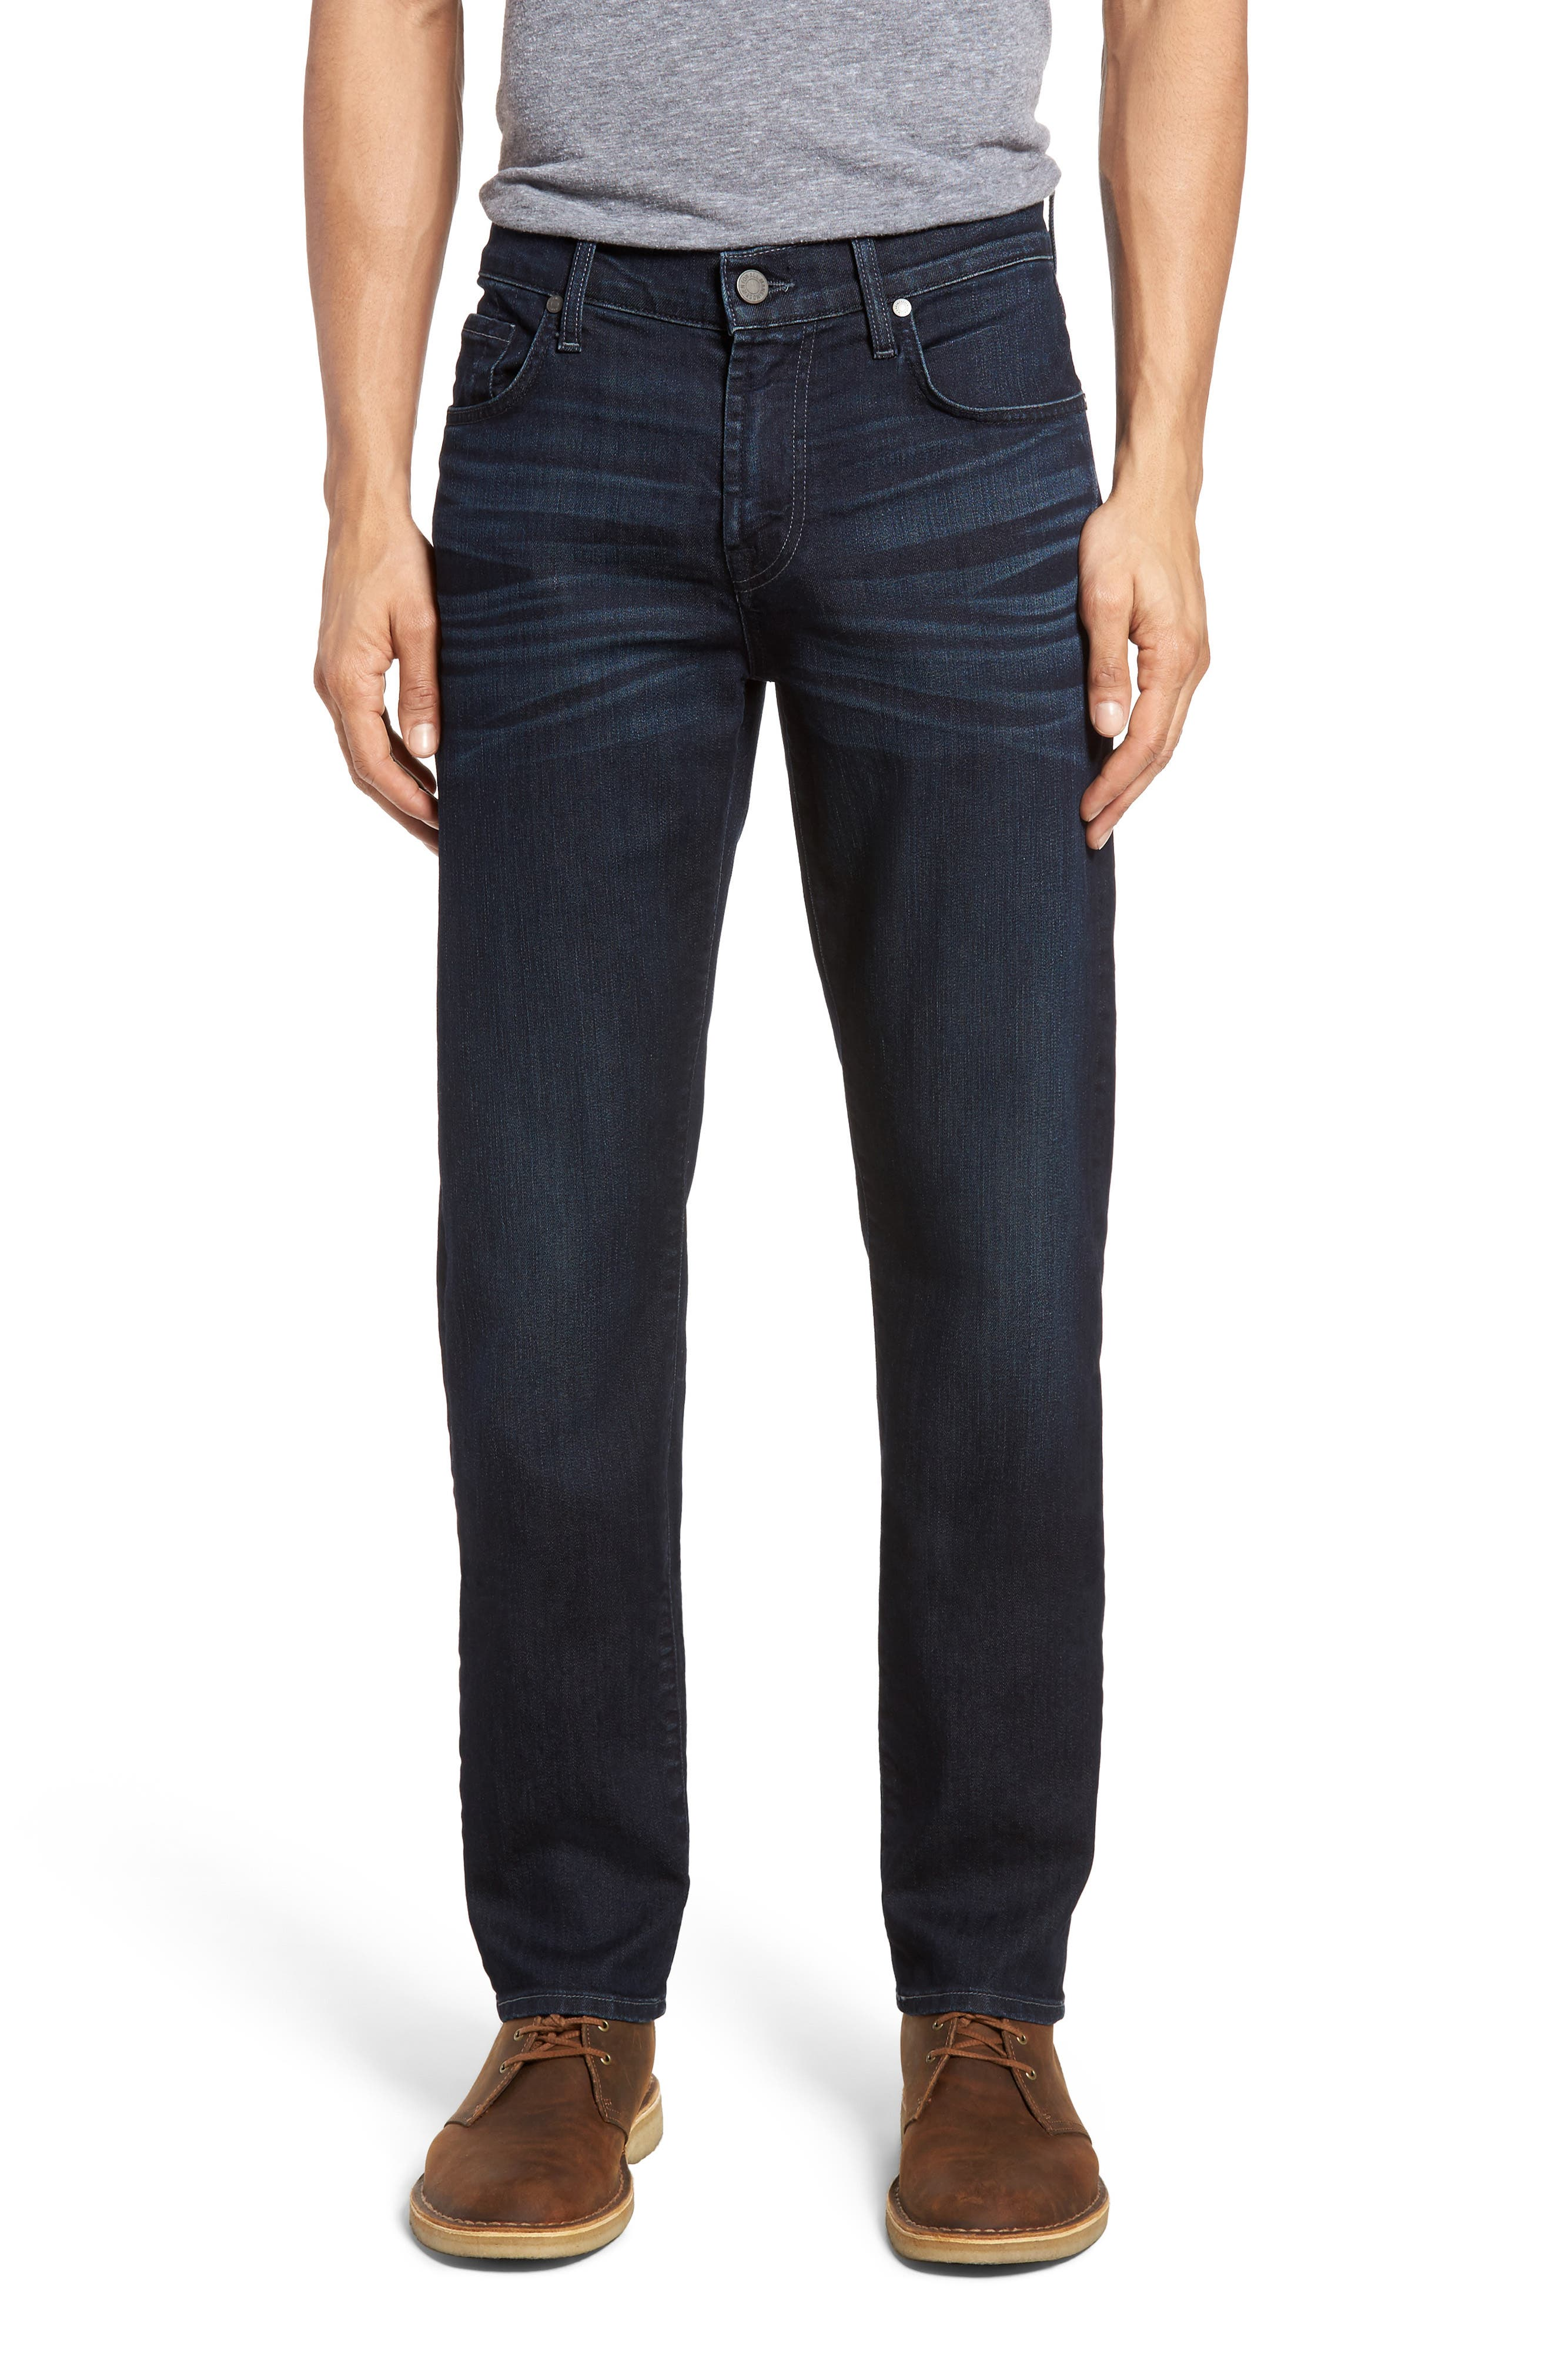 Slimmy AirWeft Slim Fit Jeans,                         Main,                         color, Perennial